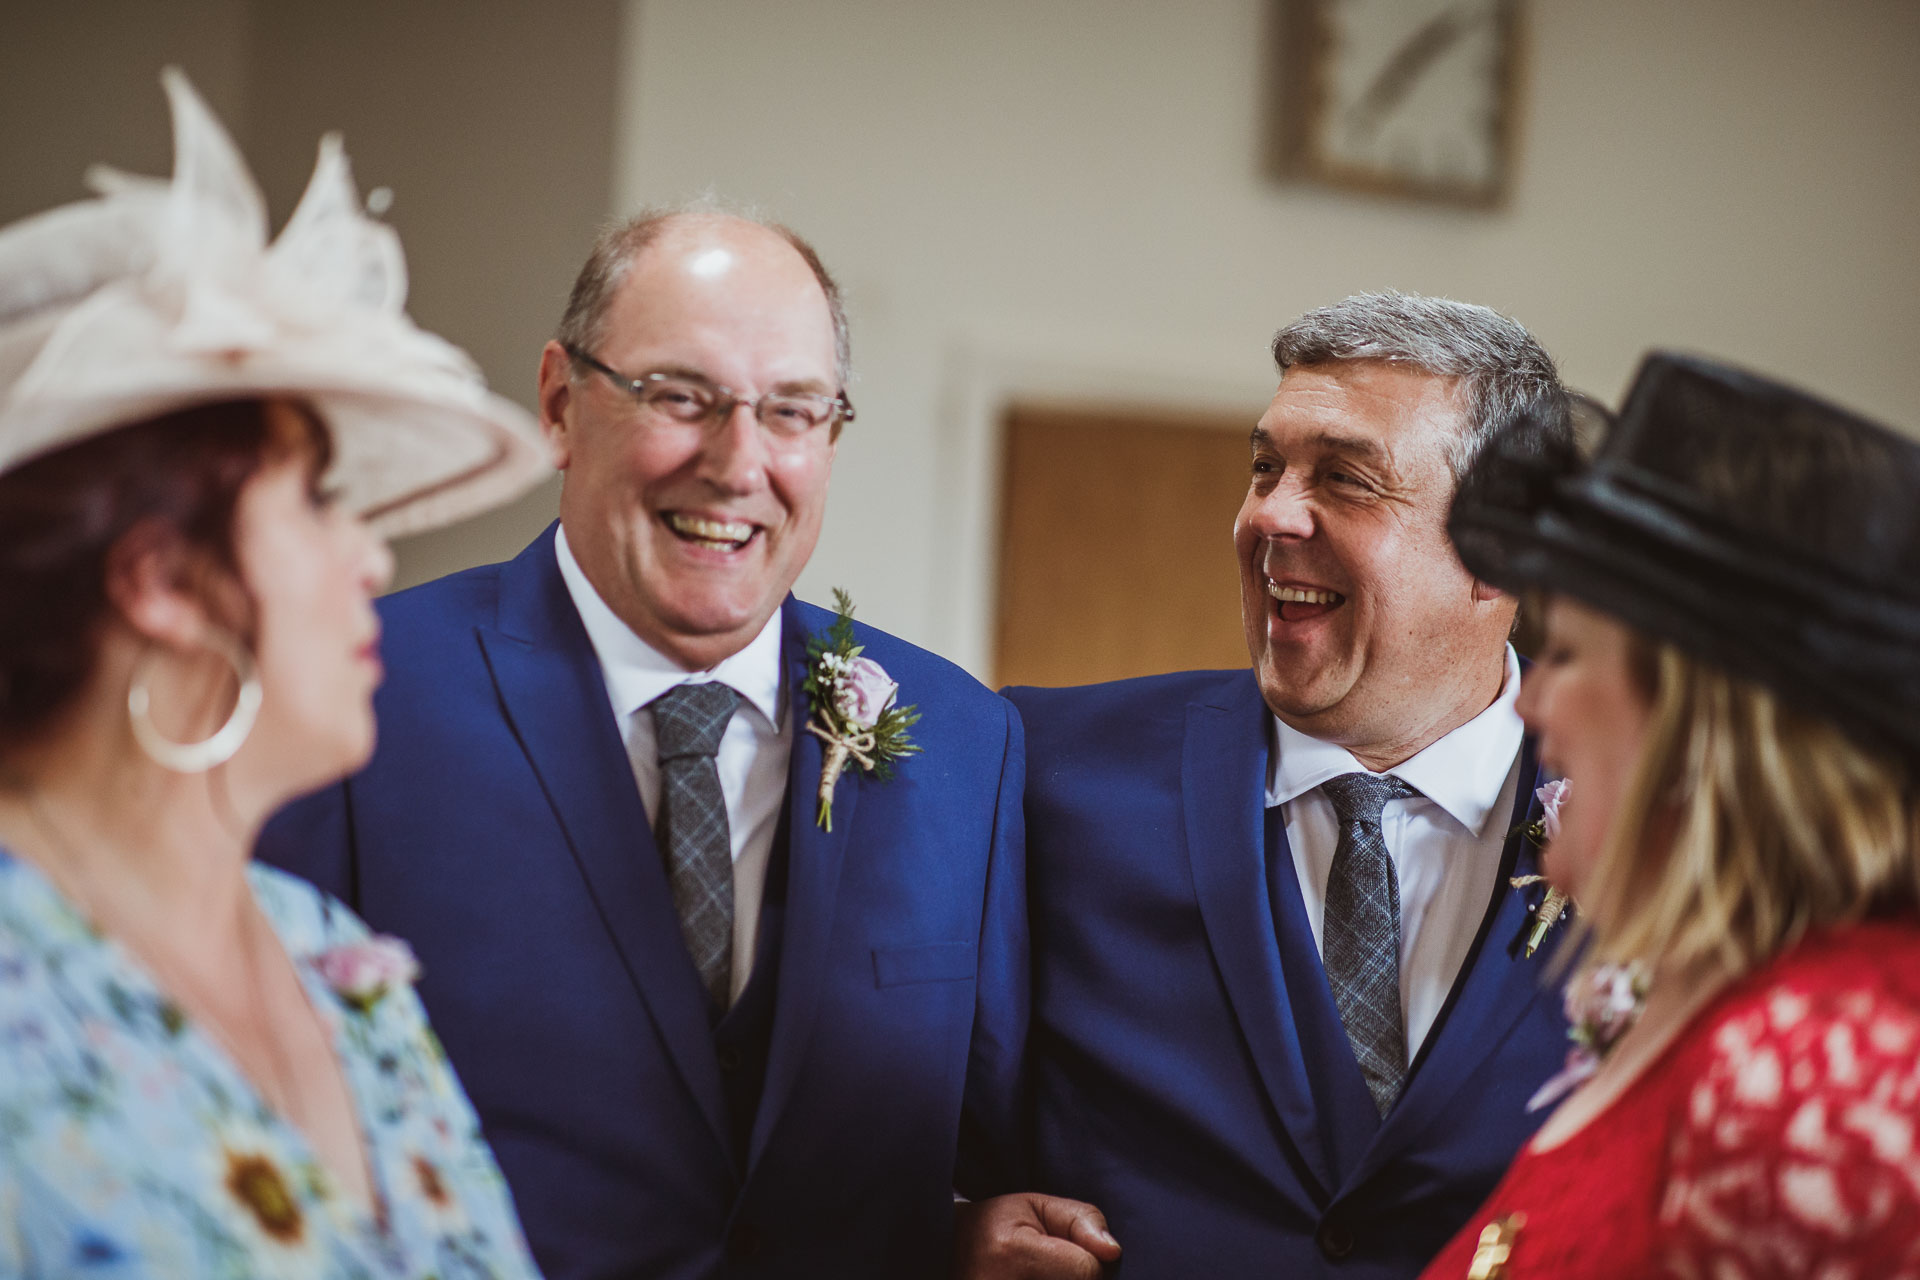 the_barn_scarborough_wedding_photographer-45.jpg